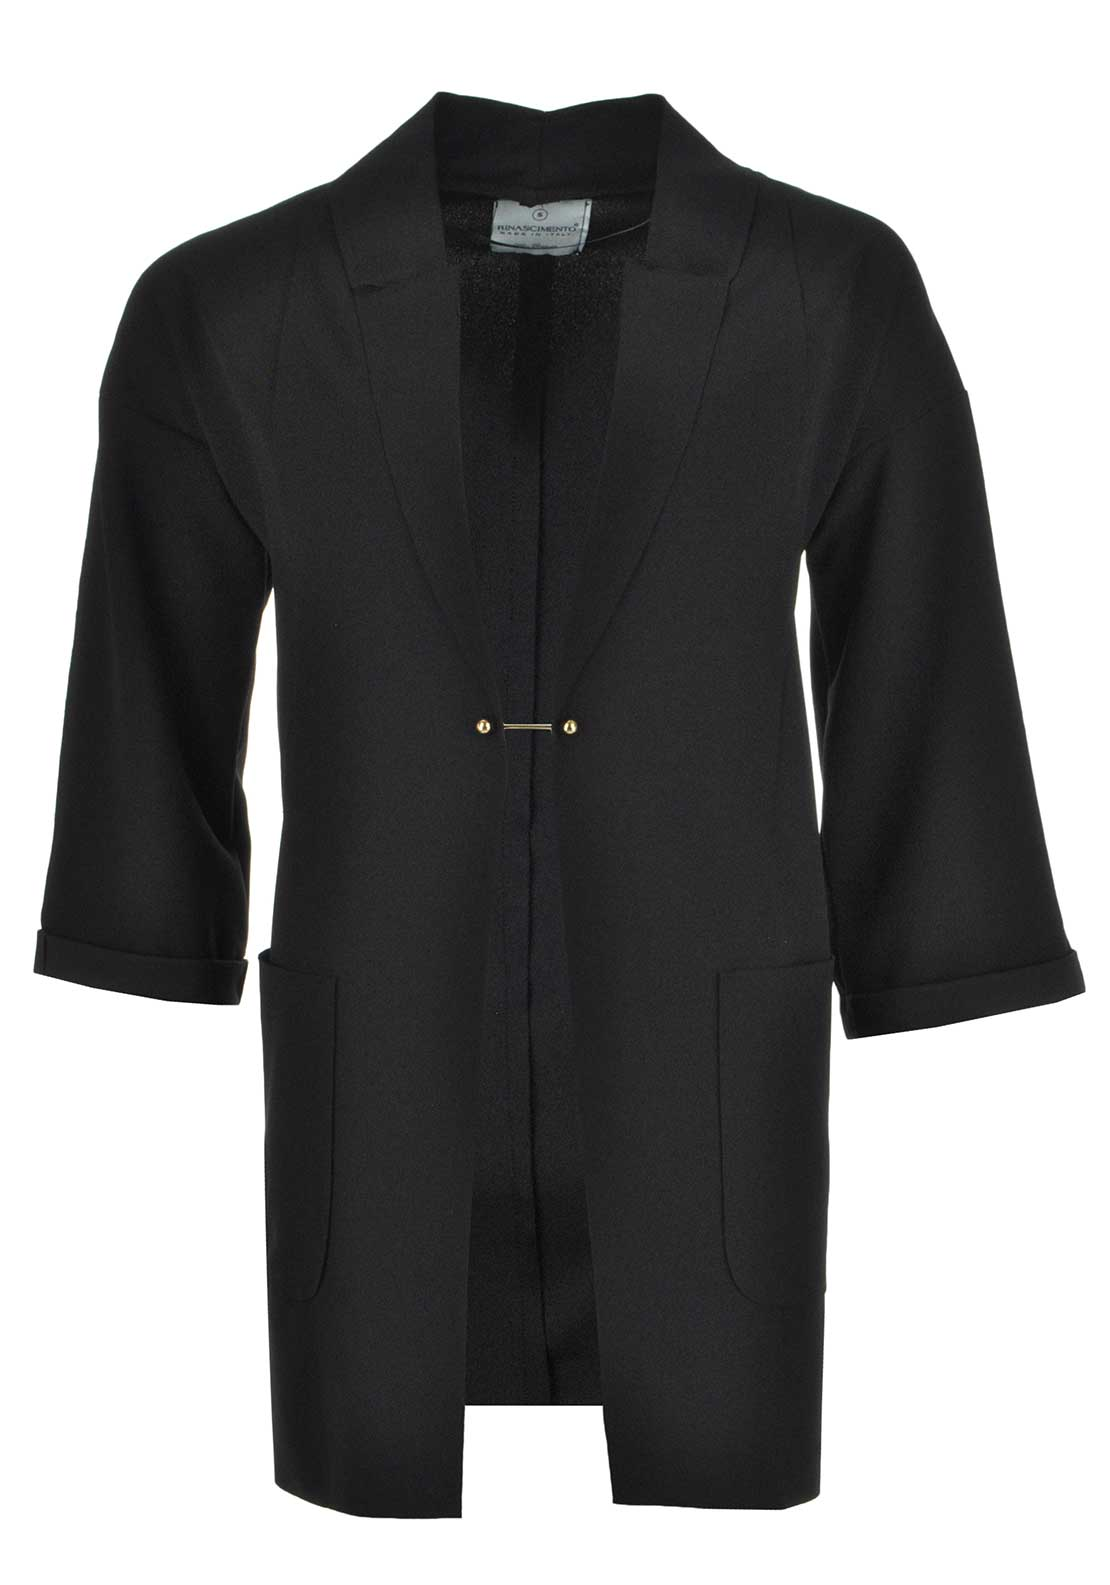 Rinascimento Cropped Sleeve Duster Jacket, Black